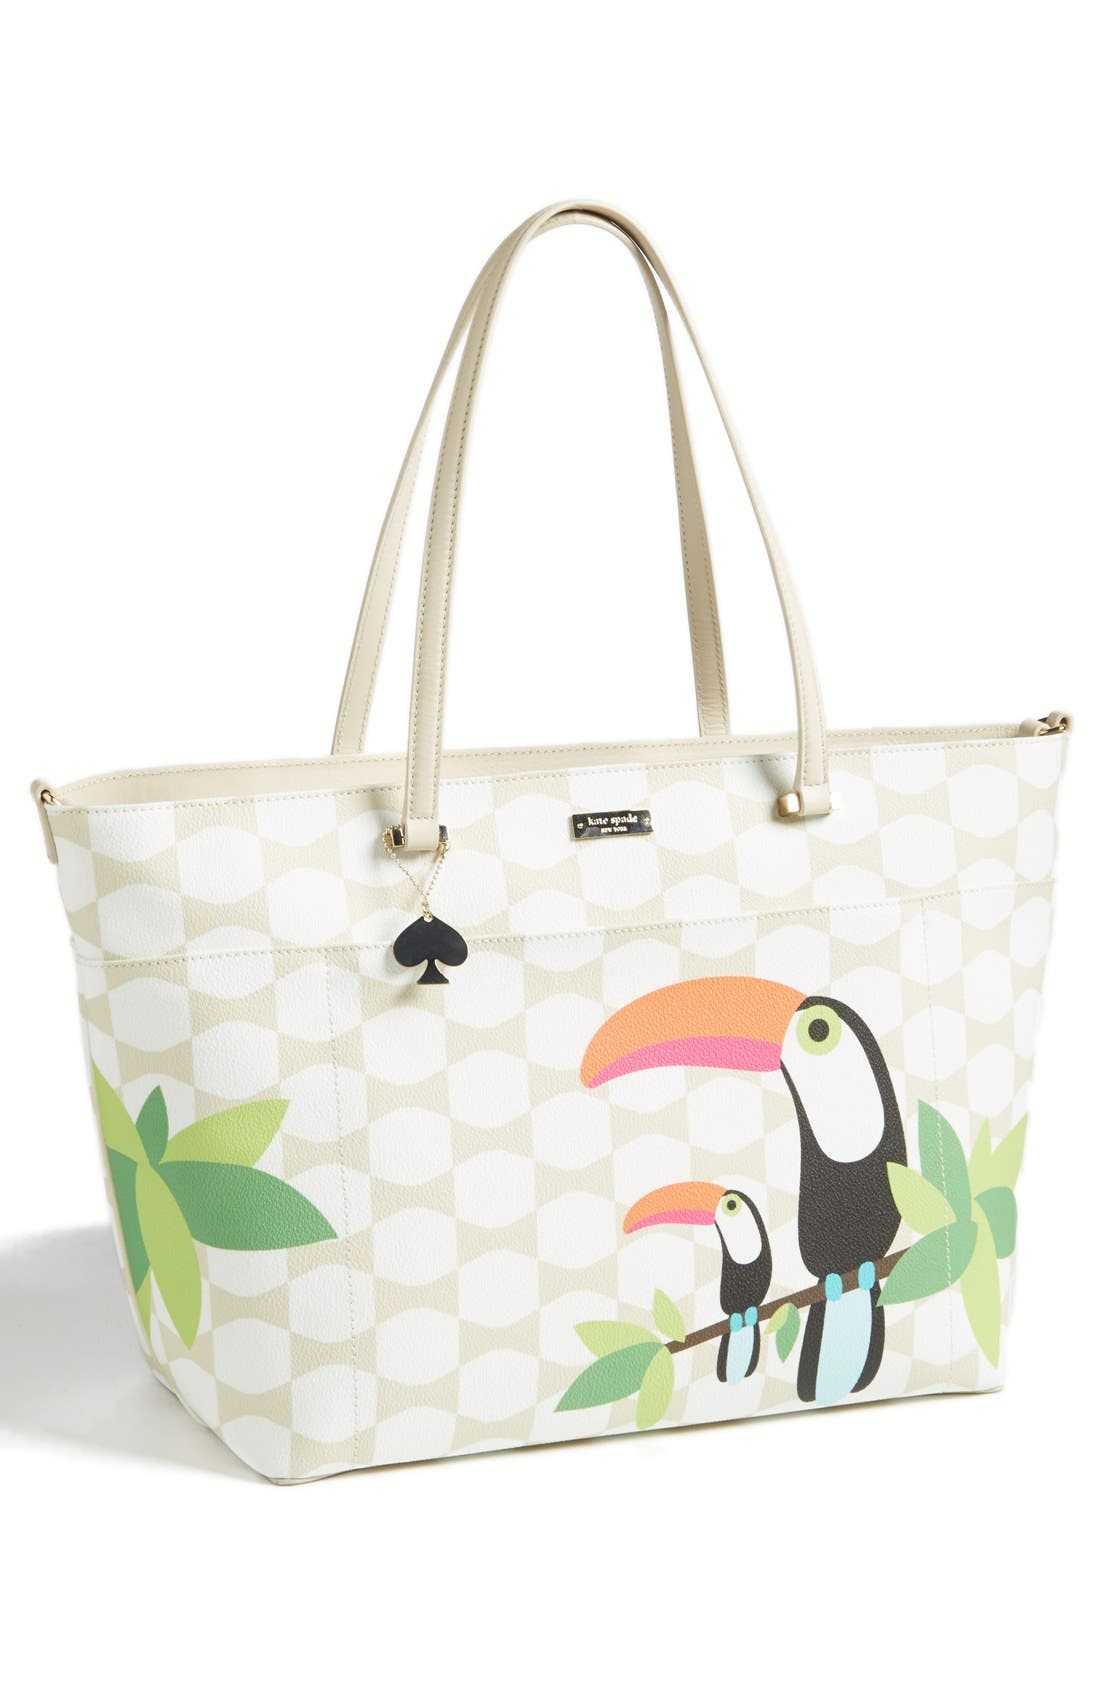 'bow tile - francis' baby bag,                         Main,                         color, Cream/ Sandy Beach Multi